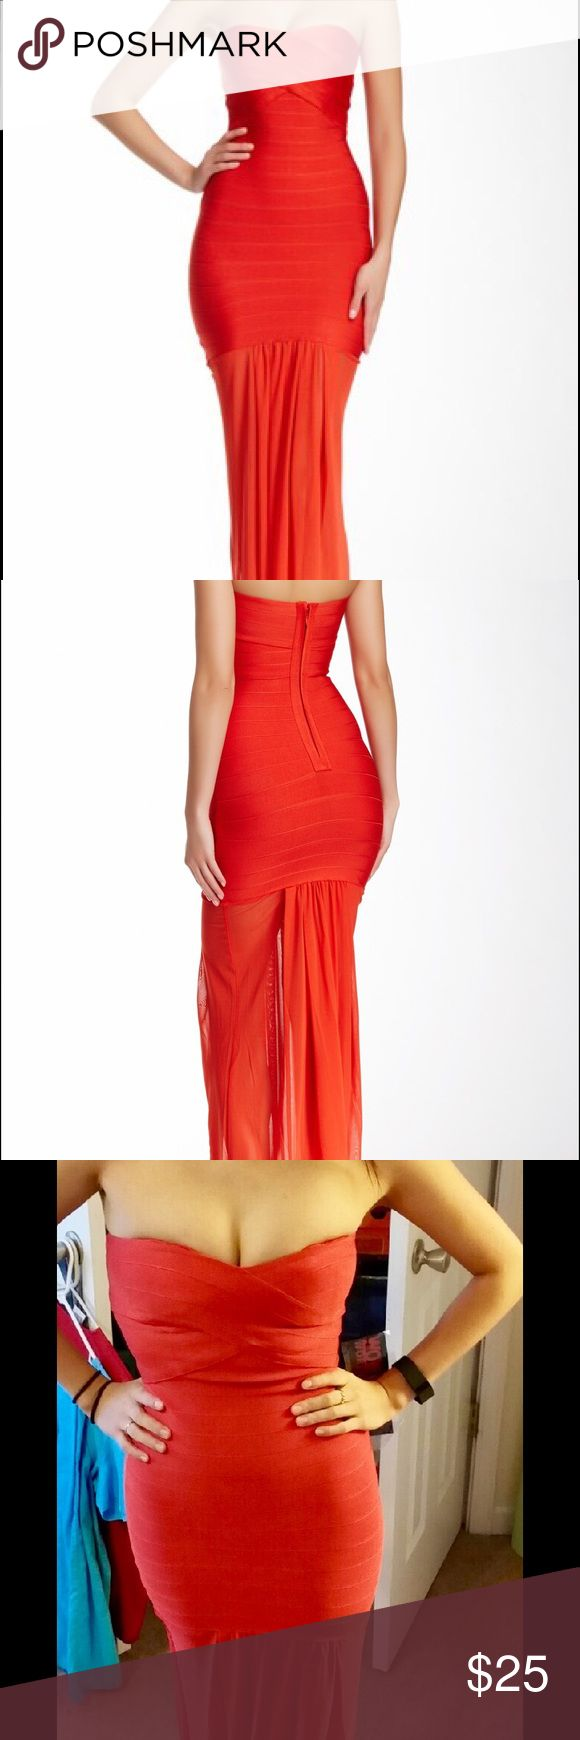 Wow couture red bandage dress with lower mesh Brand new red wow couture bandage dress! It is form fitting until it goes past your butt then it's mesh to the floor. Love the dress but it is a size or two too small for me (see pic). Would fit a size zero perfectly. WOW couture Dresses Strapless